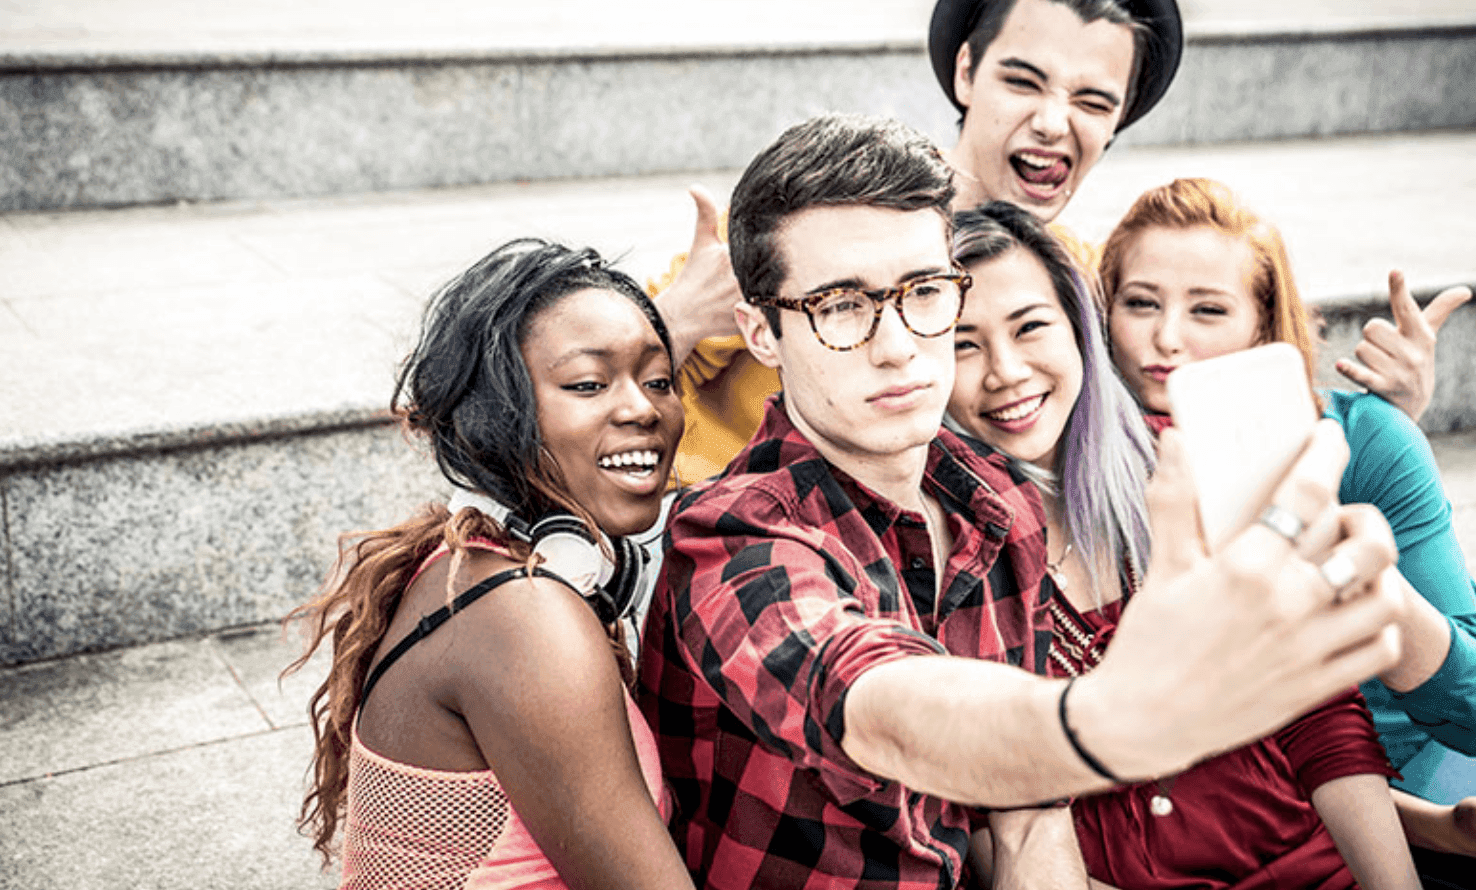 Adolescents taking a group selfie during a hangout